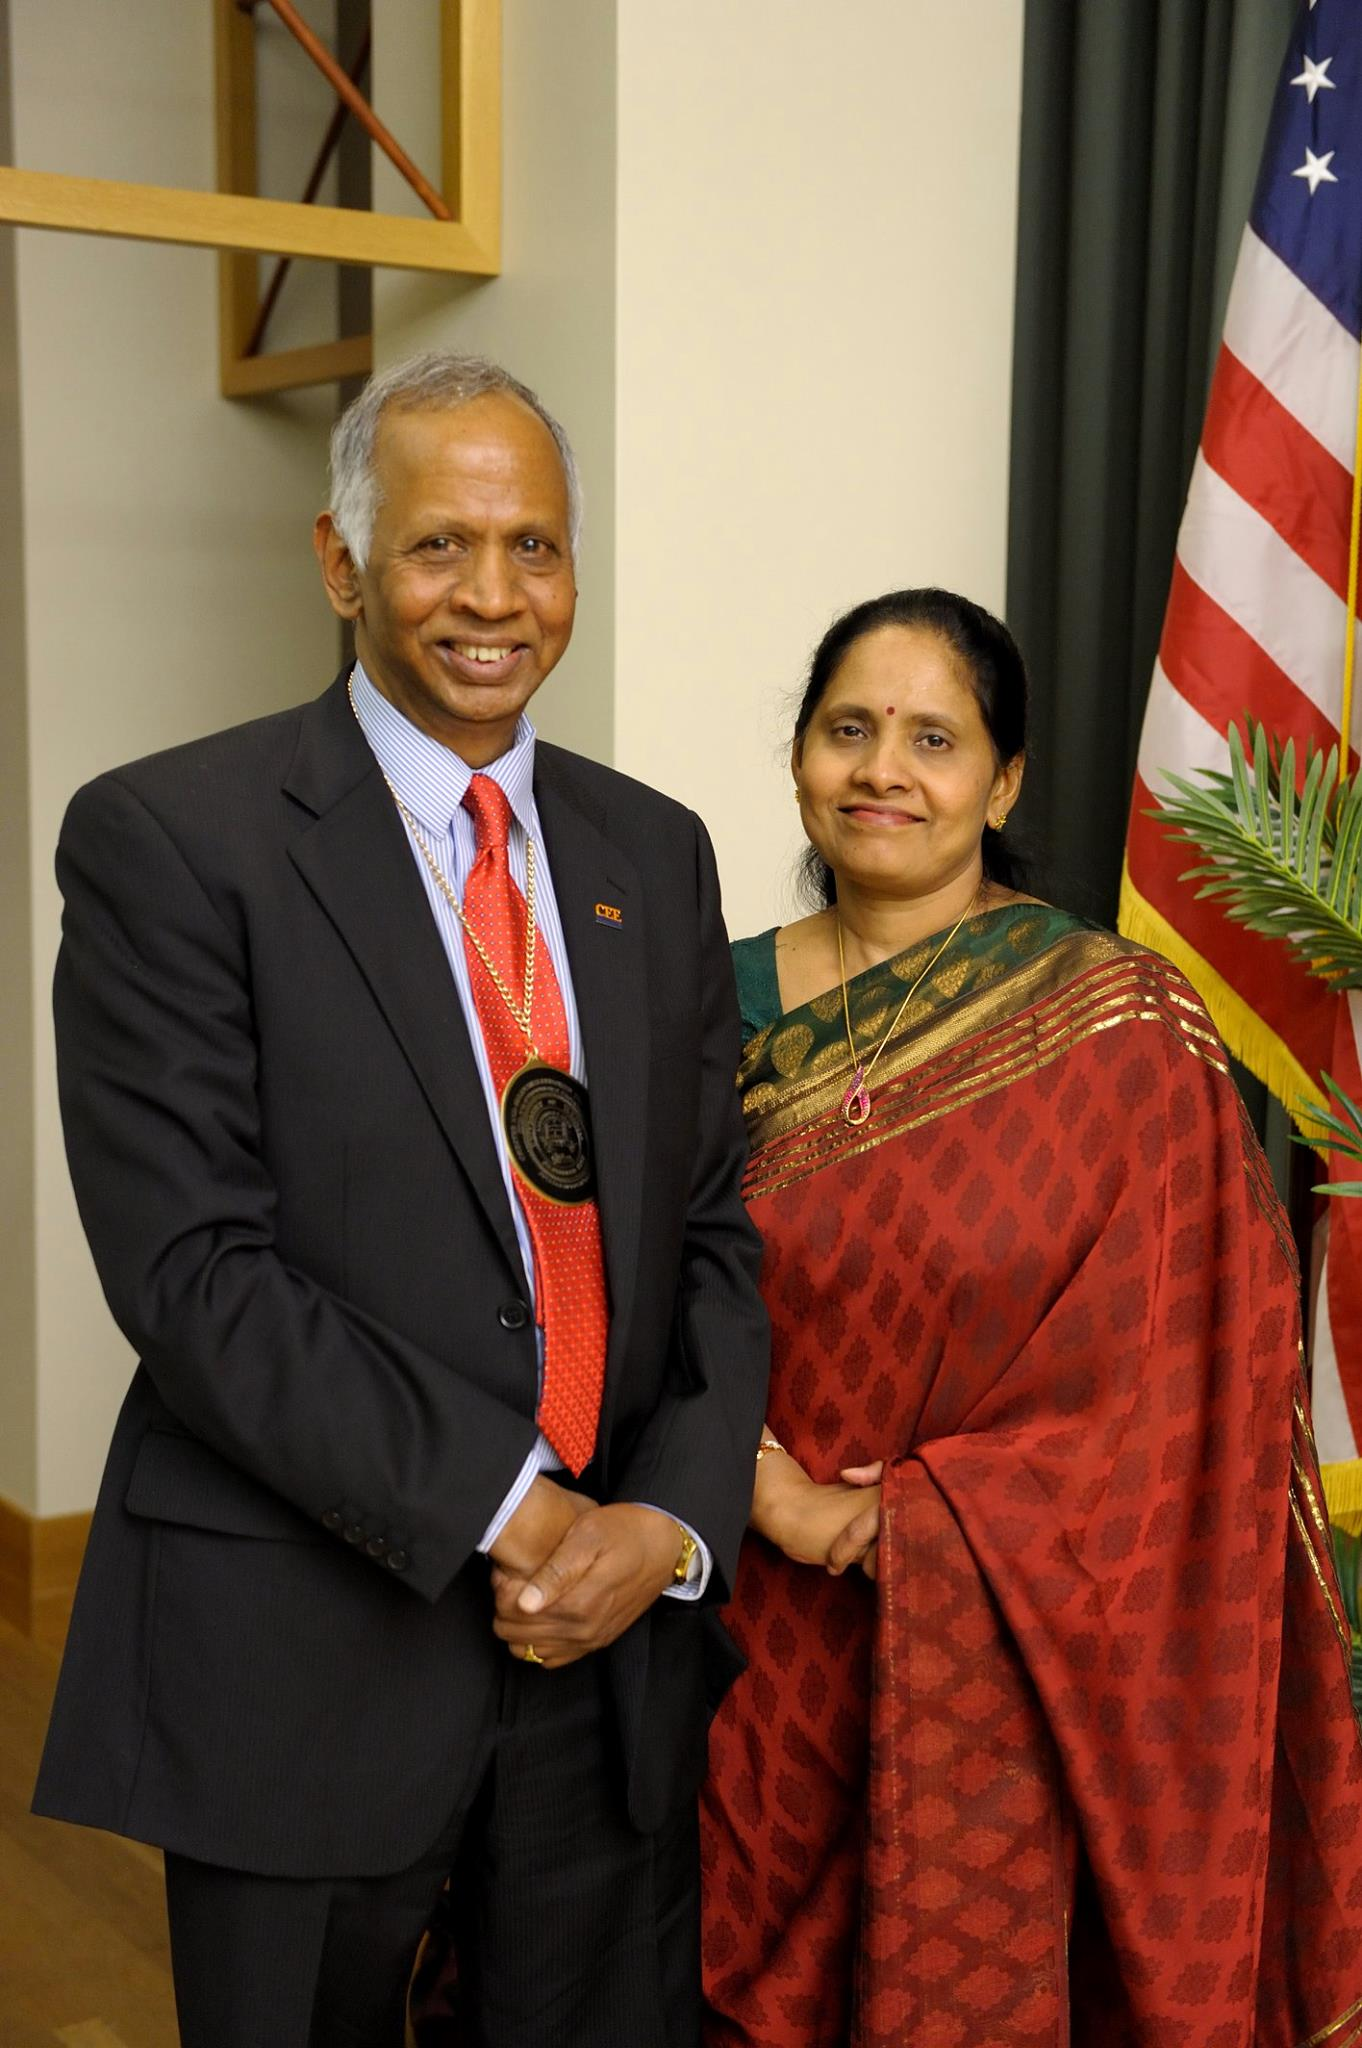 Prof. Murugesu Sivapalan with wife Banumathy